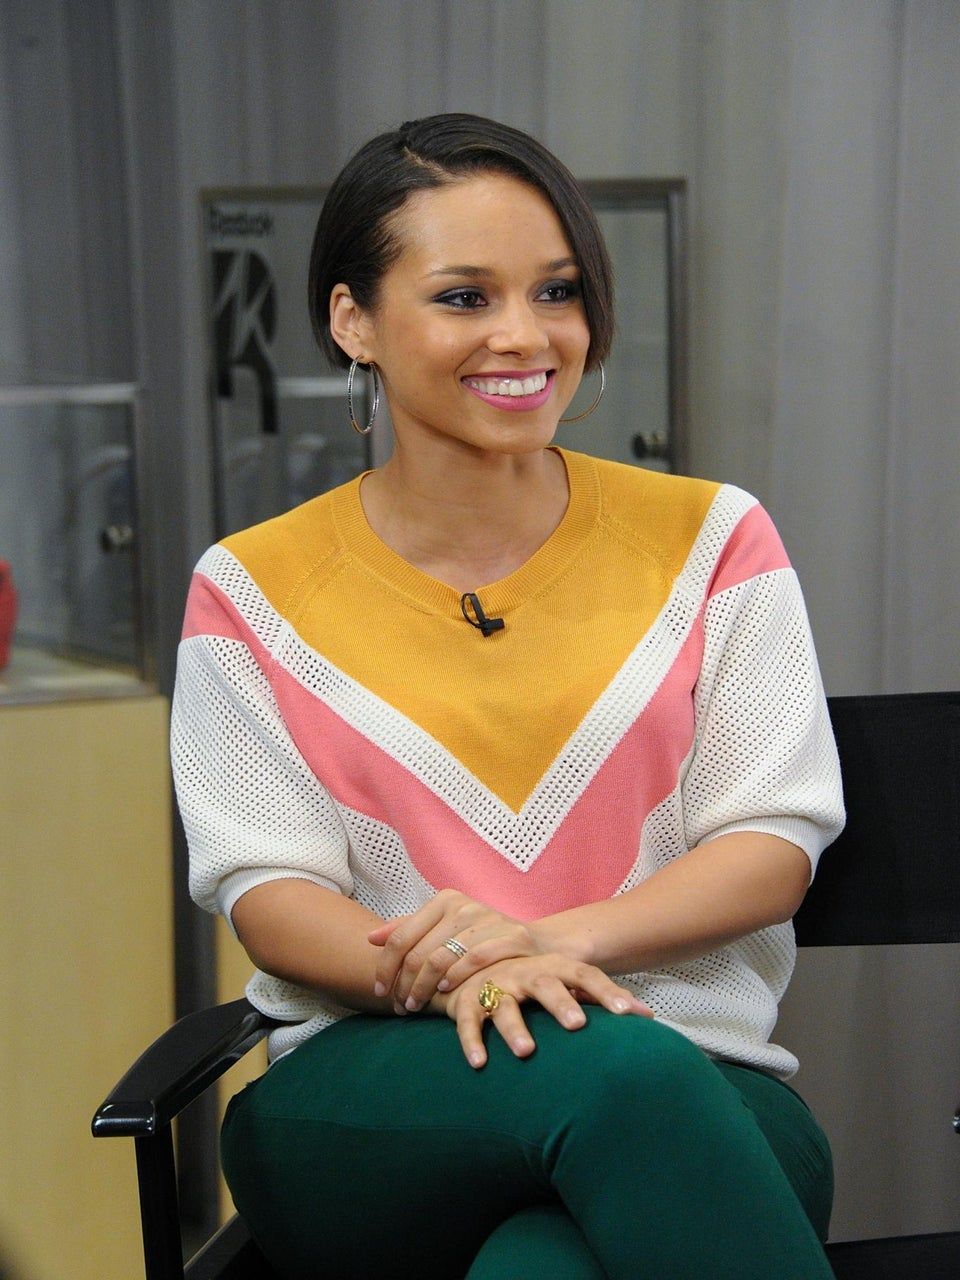 Alicia Keys and Jennifer Hudson Called to Promote Affordable Care Act